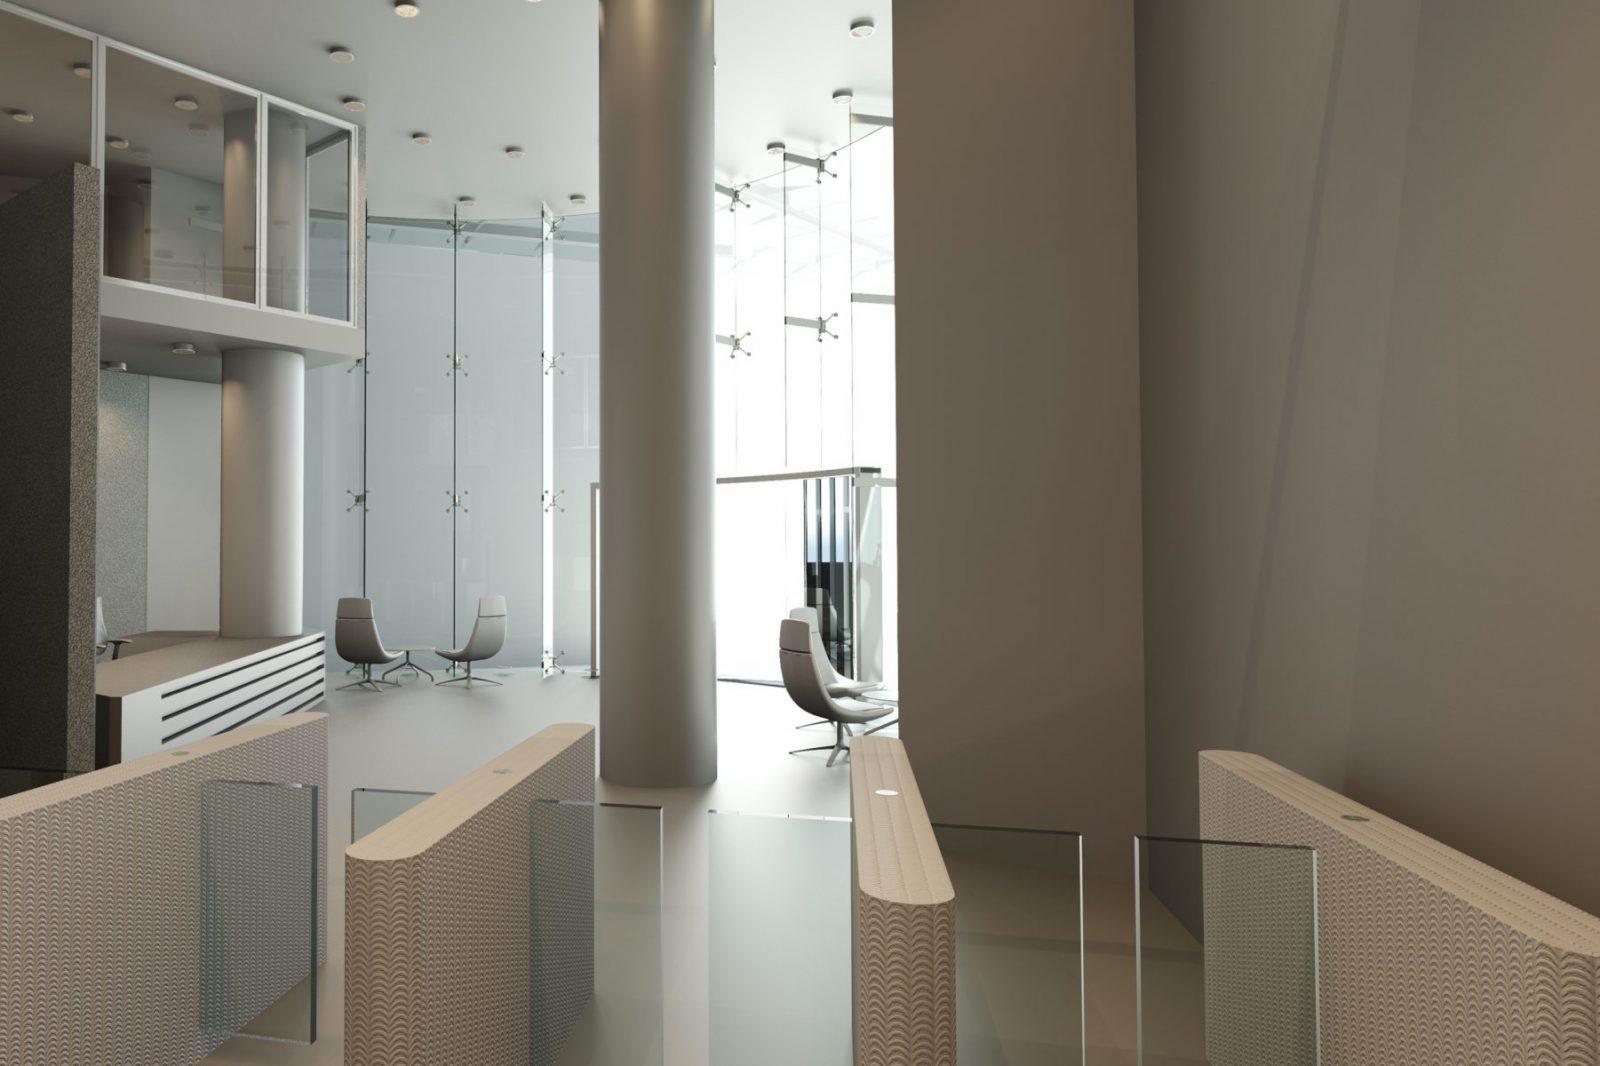 st phillips point birmingham offices refurb interiors architects jersey architecture2